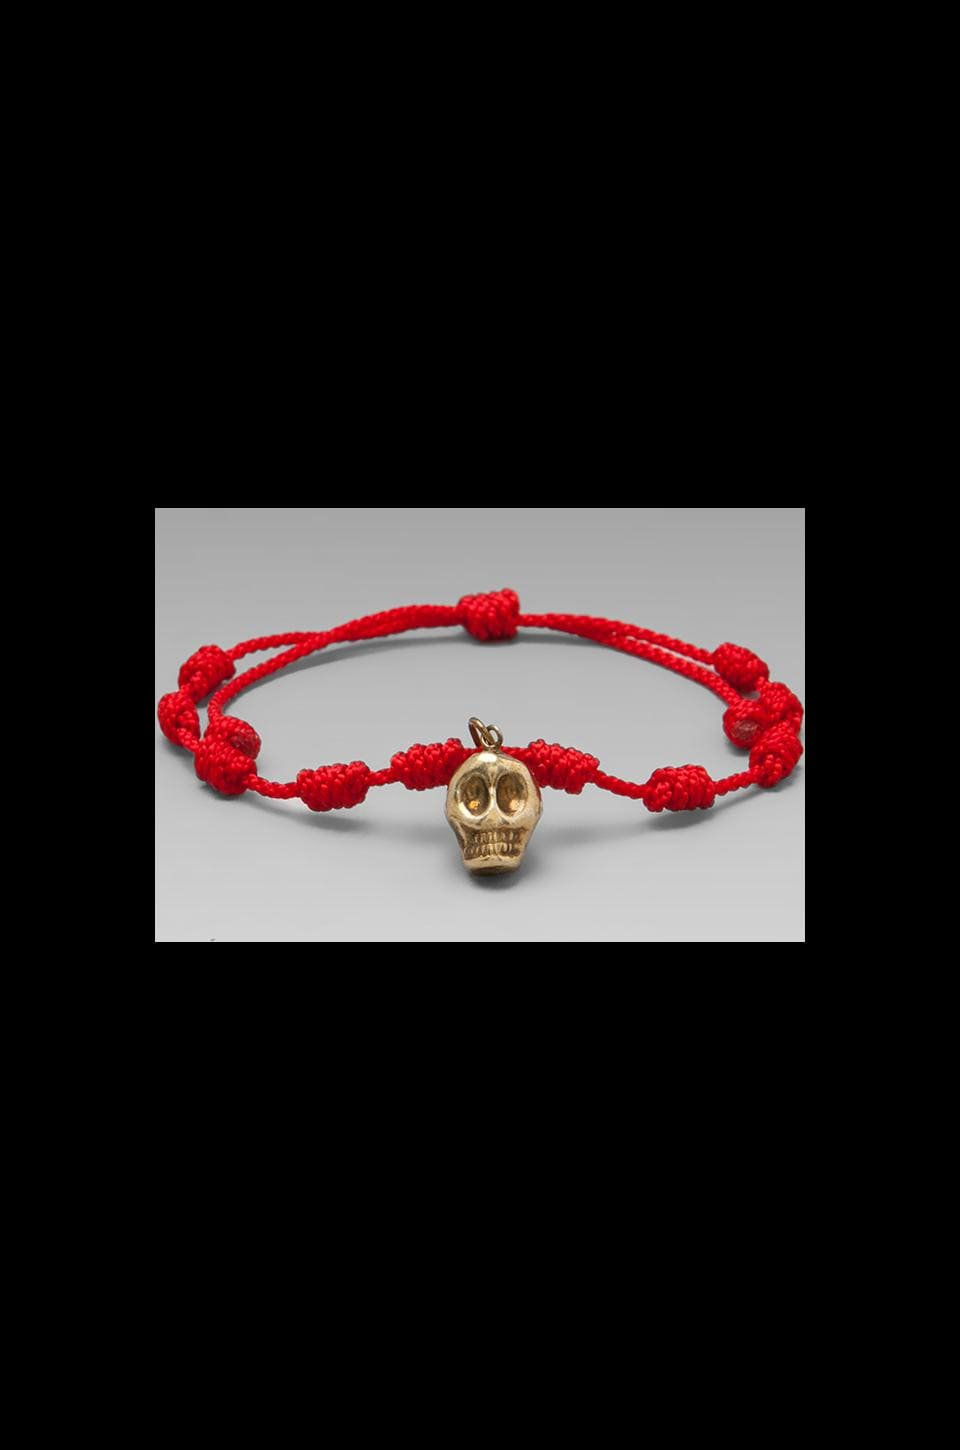 MONO & ME Calavera Bracelet in Red/Gold